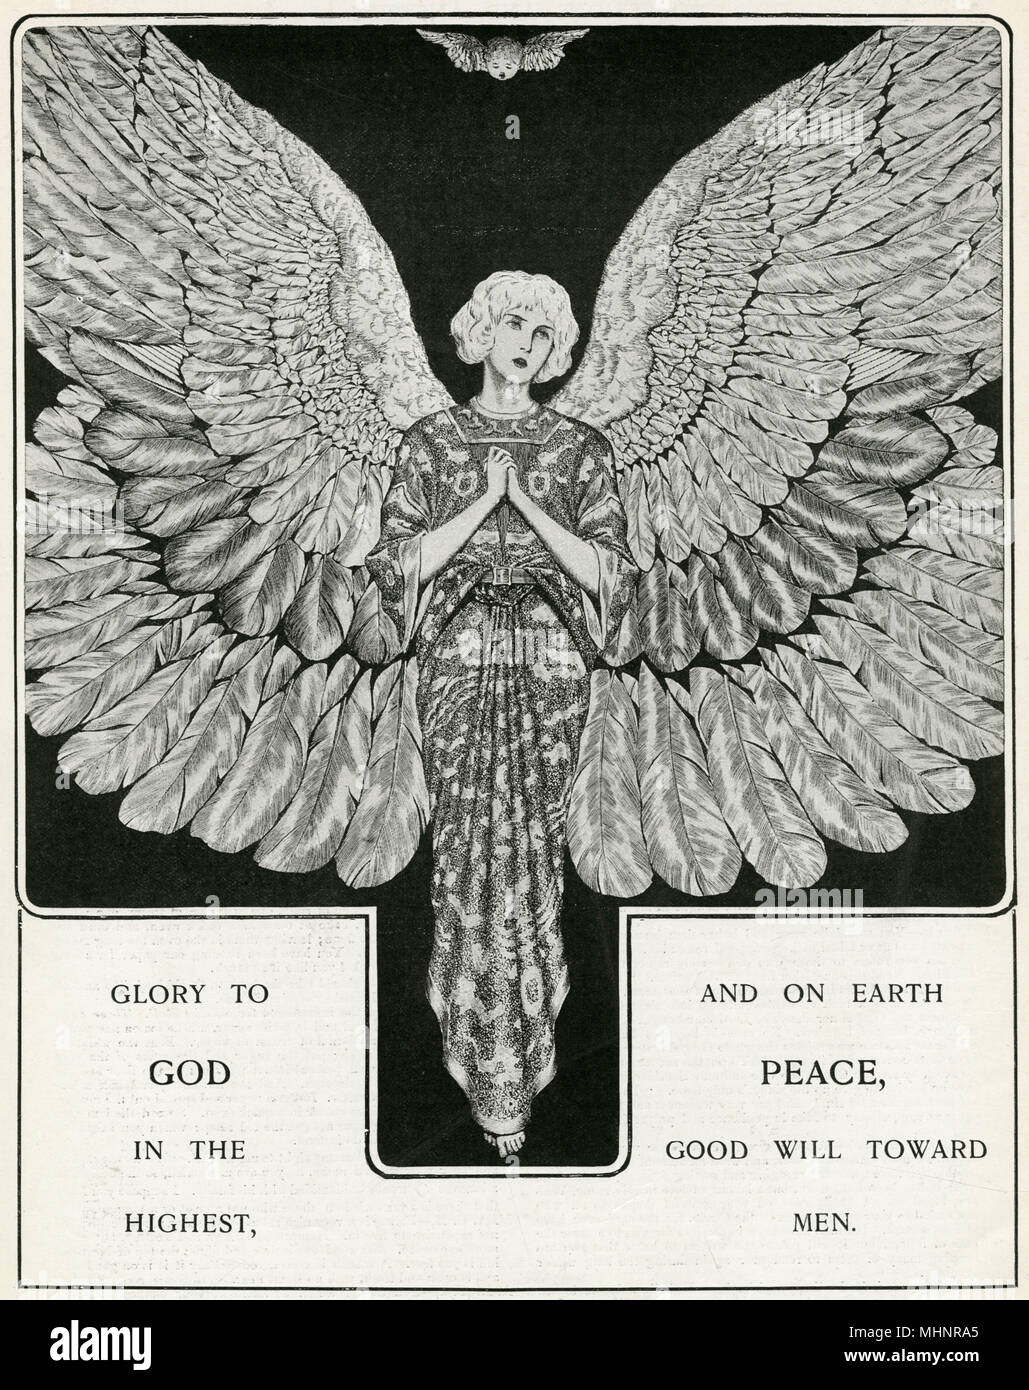 """""""Glory to God in the highest and on Earth PEACE, Good will towards men"""". Winged angel in a pre-raphaelite style. - Stock Image"""